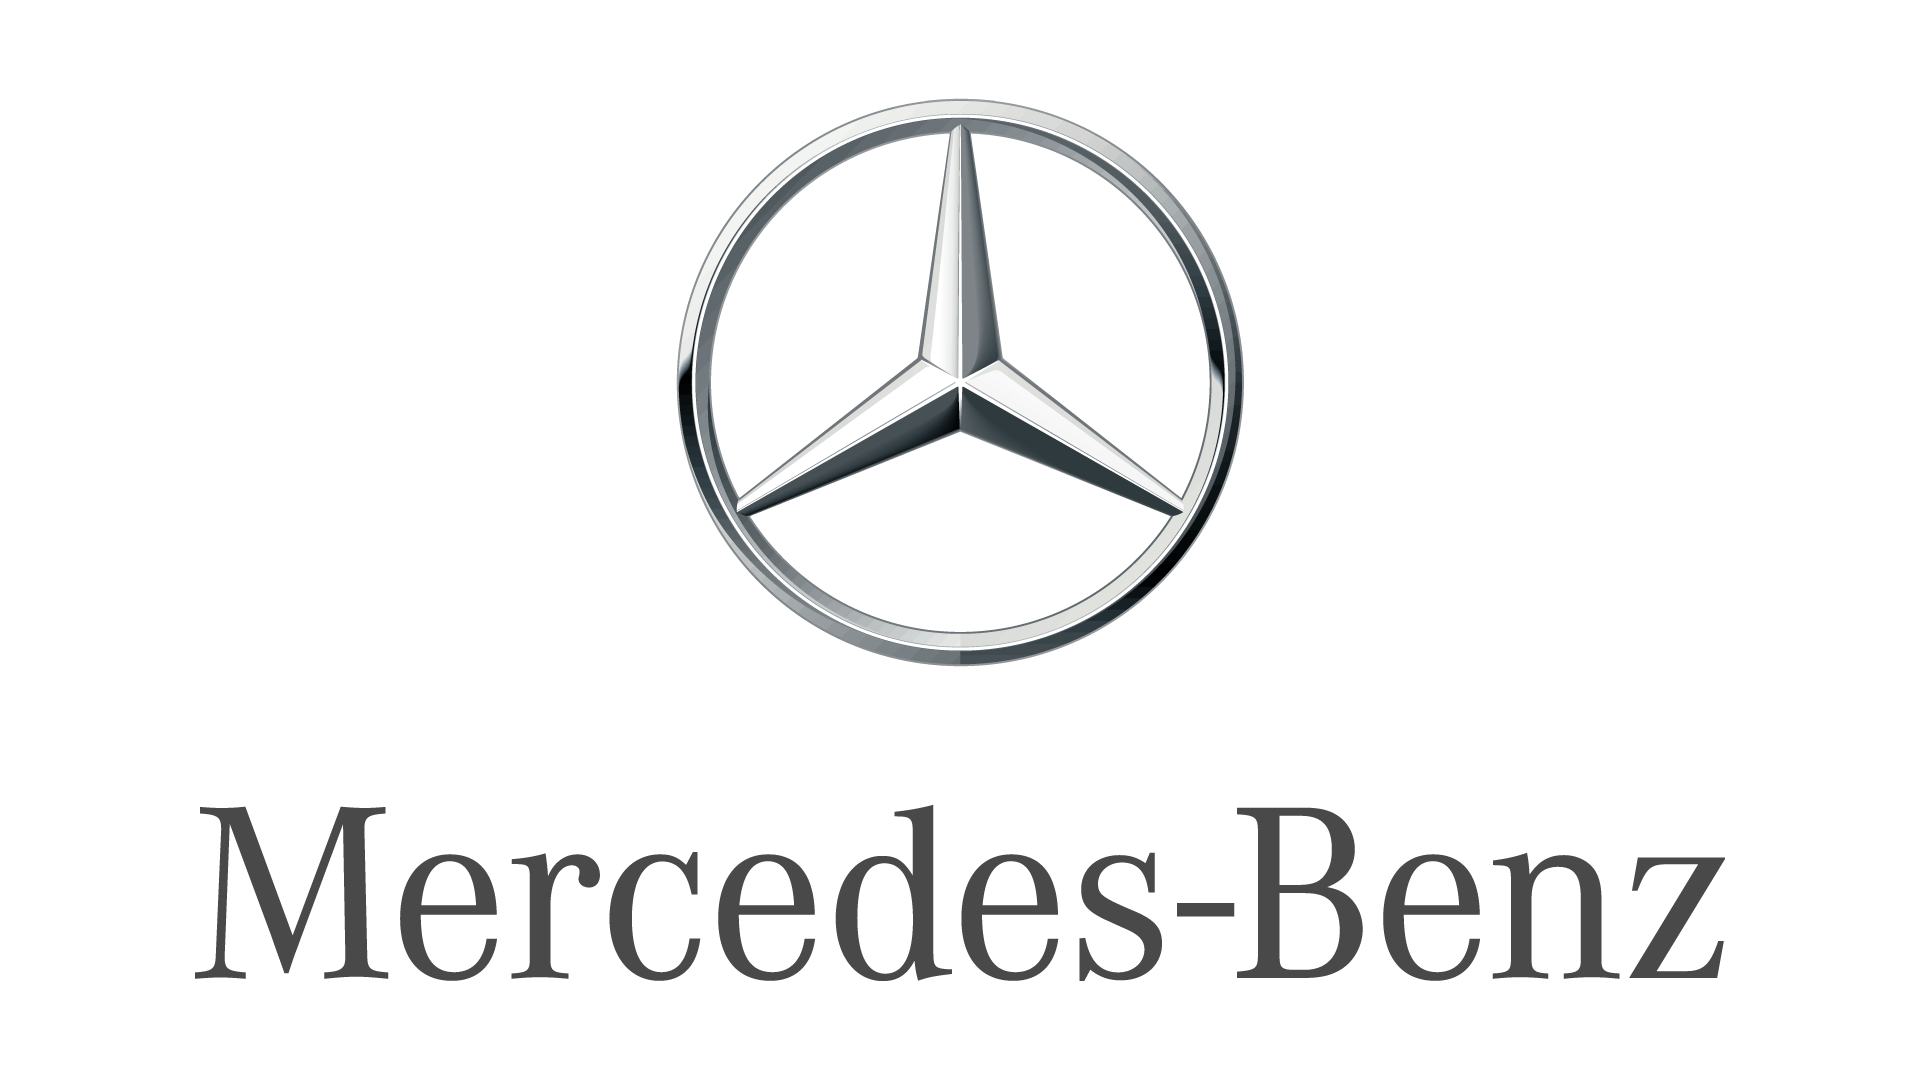 Mercedes-Benz Logo - Mercedes-Benz Logo, HD Png, Meaning, Information | Carlogos.org